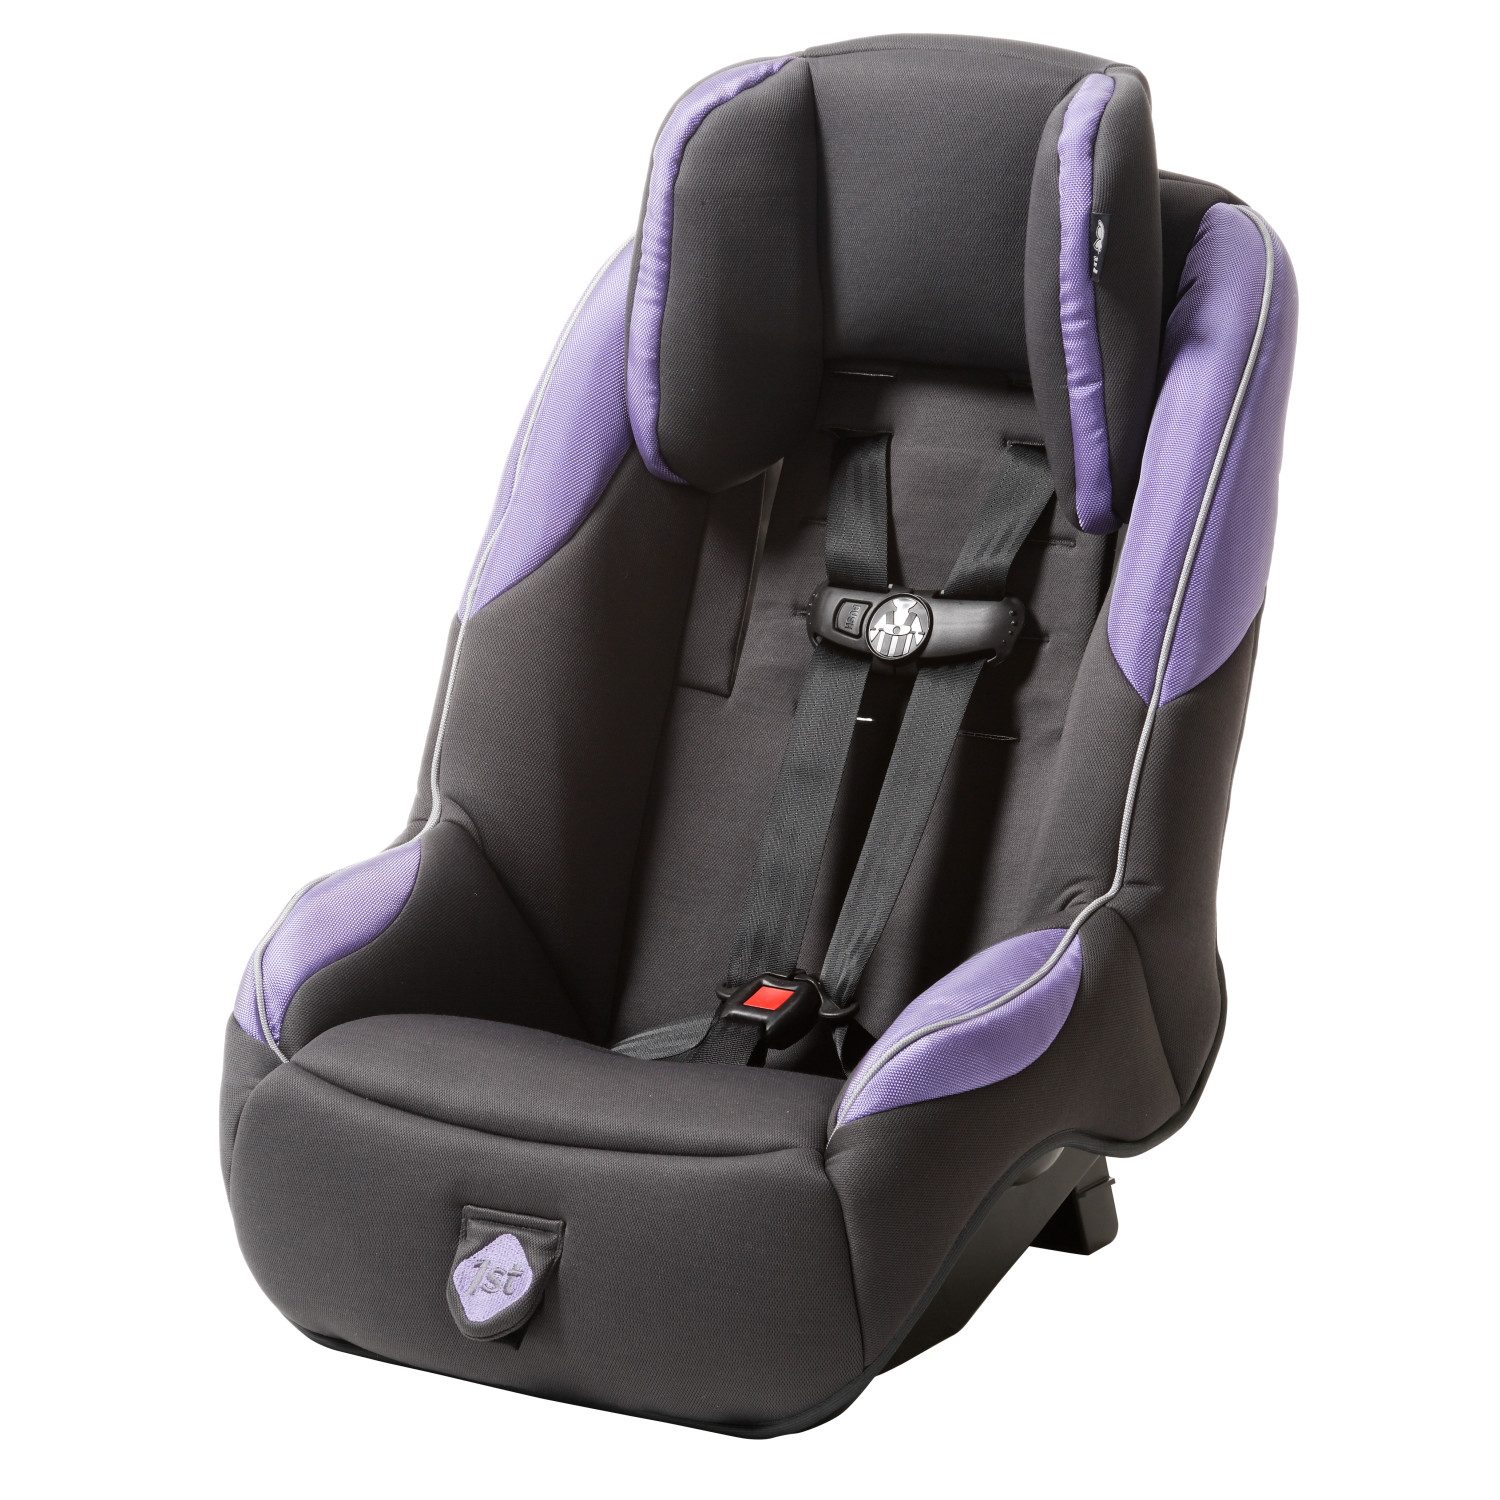 safety 1st guide 65 convertible car seat ebay. Black Bedroom Furniture Sets. Home Design Ideas